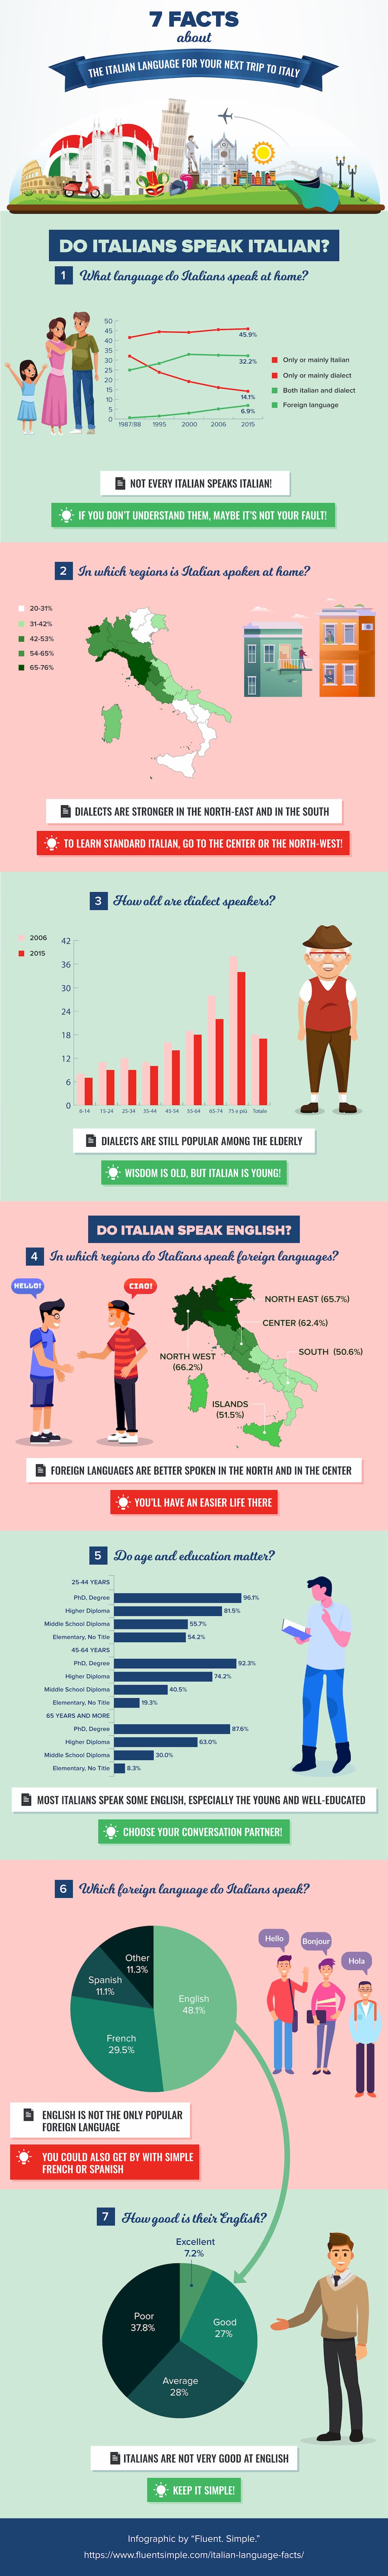 Italian language facts